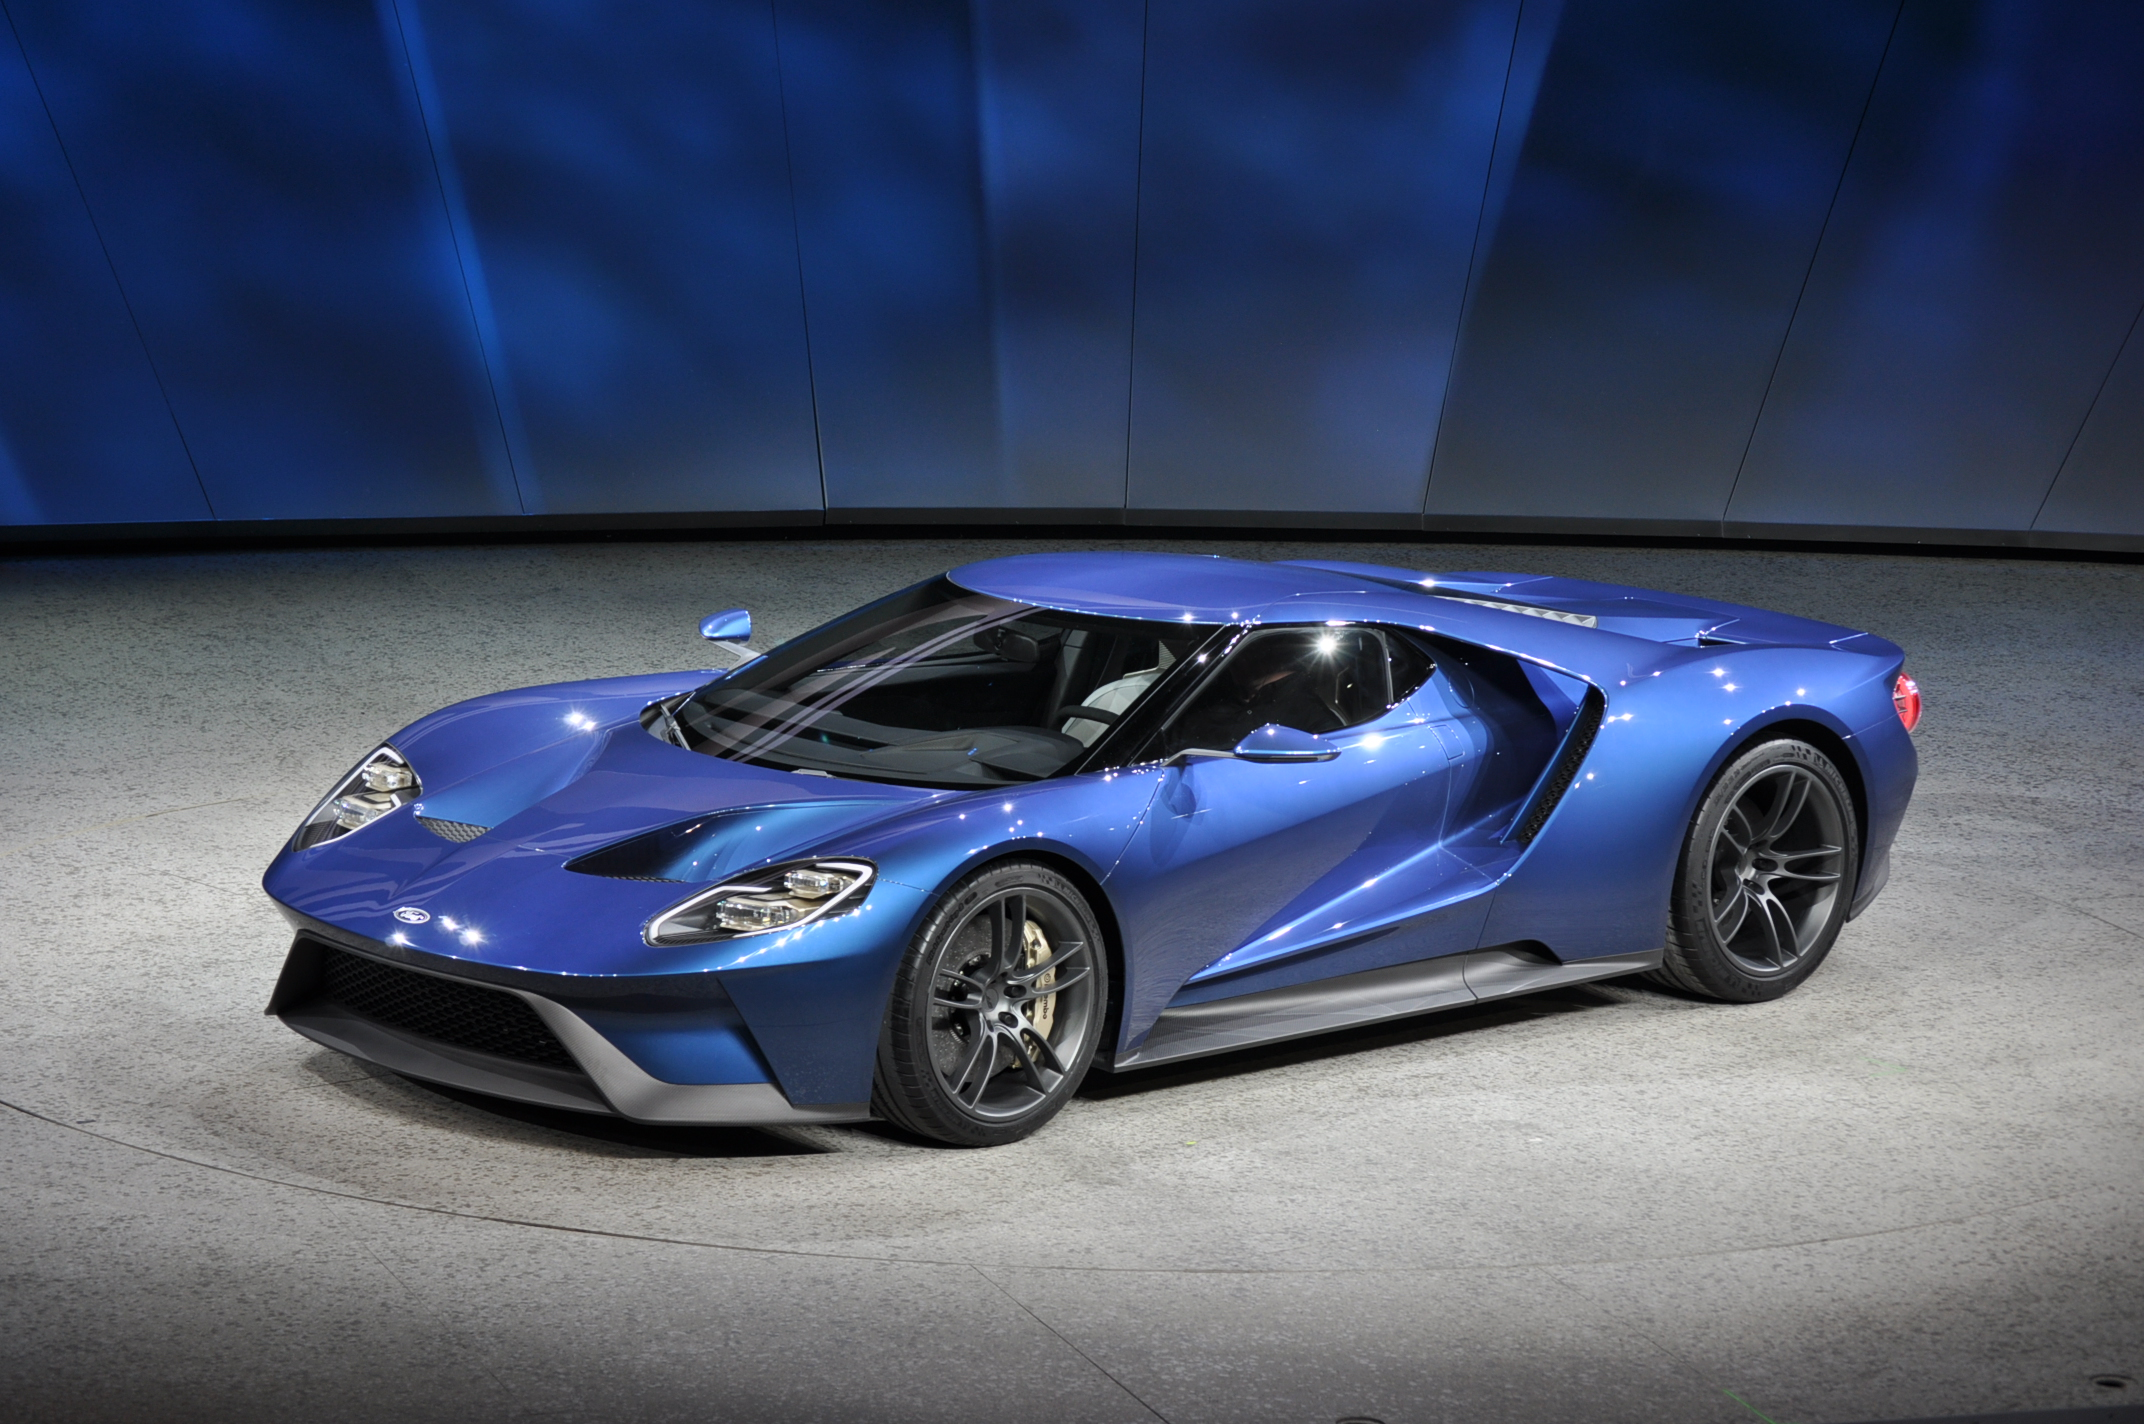 ford gt v 6 sips more gas than viper v 10 according to epa. Black Bedroom Furniture Sets. Home Design Ideas